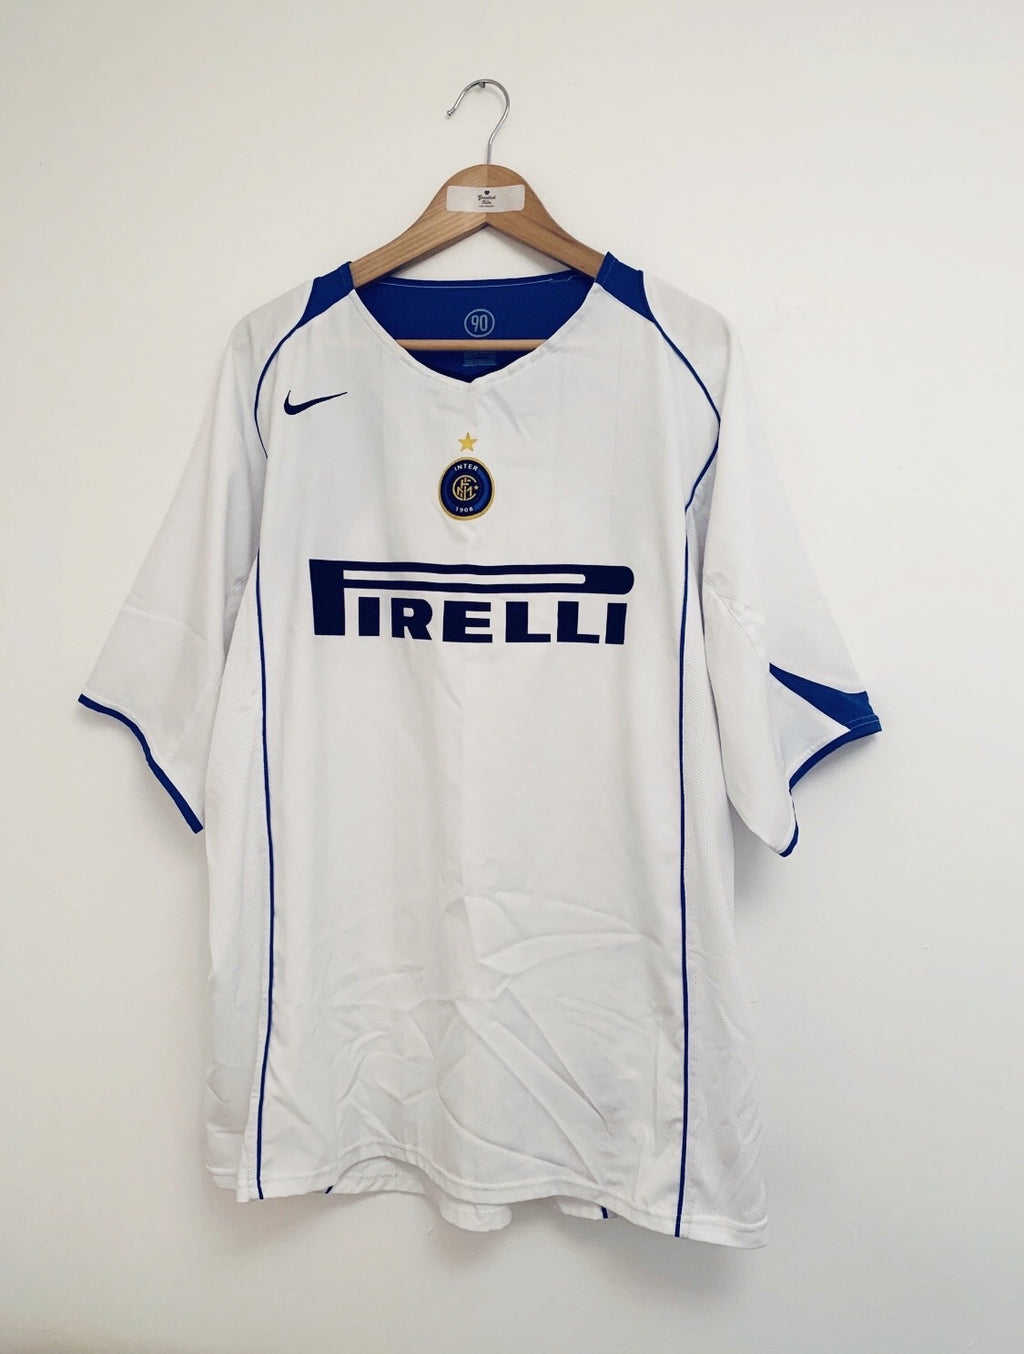 2004/05 Inter Milan Away Shirt (XXL) 9/10